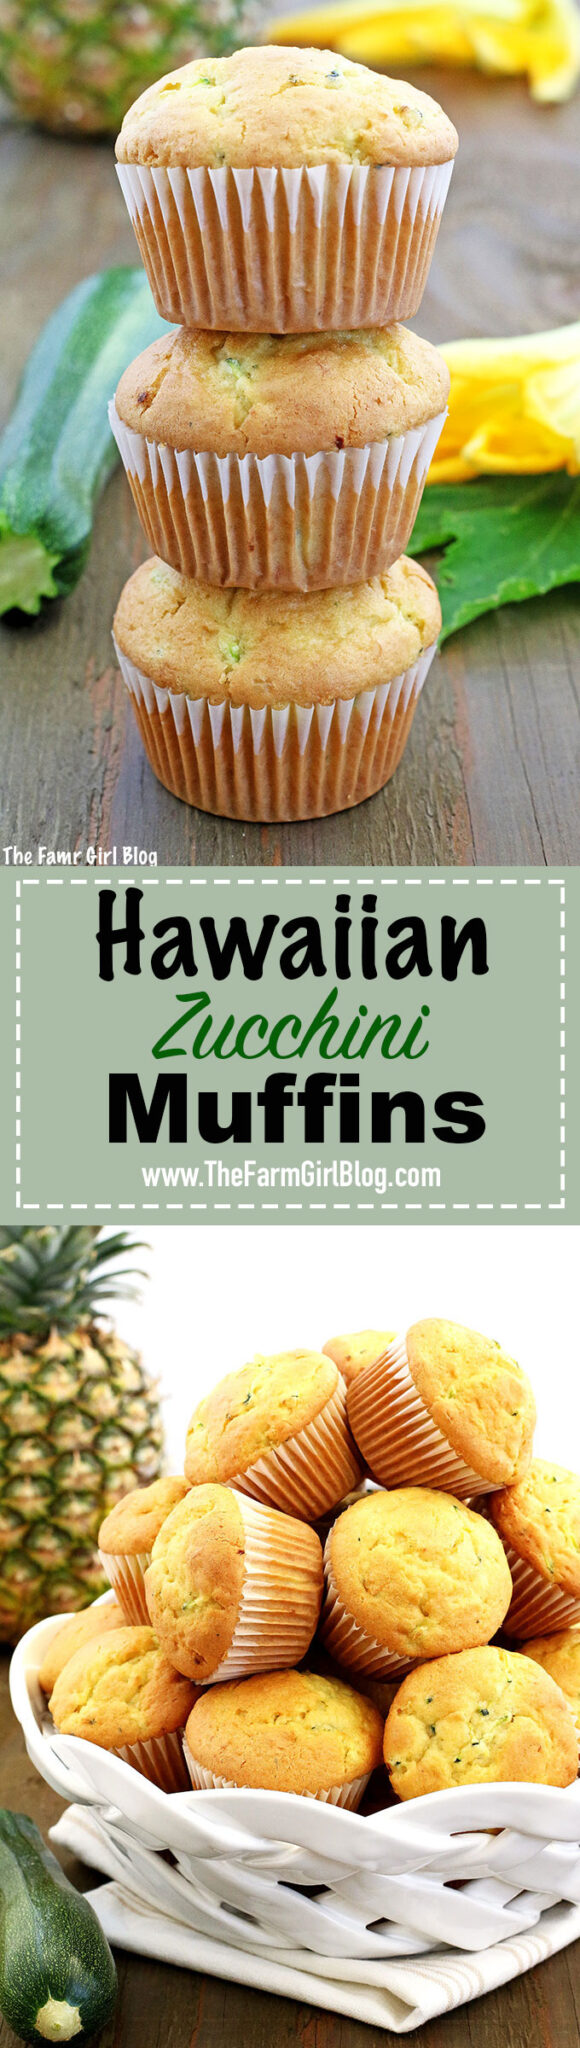 backyard gardening, cage free ranch eggs, delicious, Hawaiian Zucchini Muffins Recipe, home eggs, home baked goods, homegrown zucchinis, organic eggs, organic flour, organic grown zucchini, organic sugar, pineapple zucchini muffins, summer baking, summer vegetable harvest, zucchini muffins